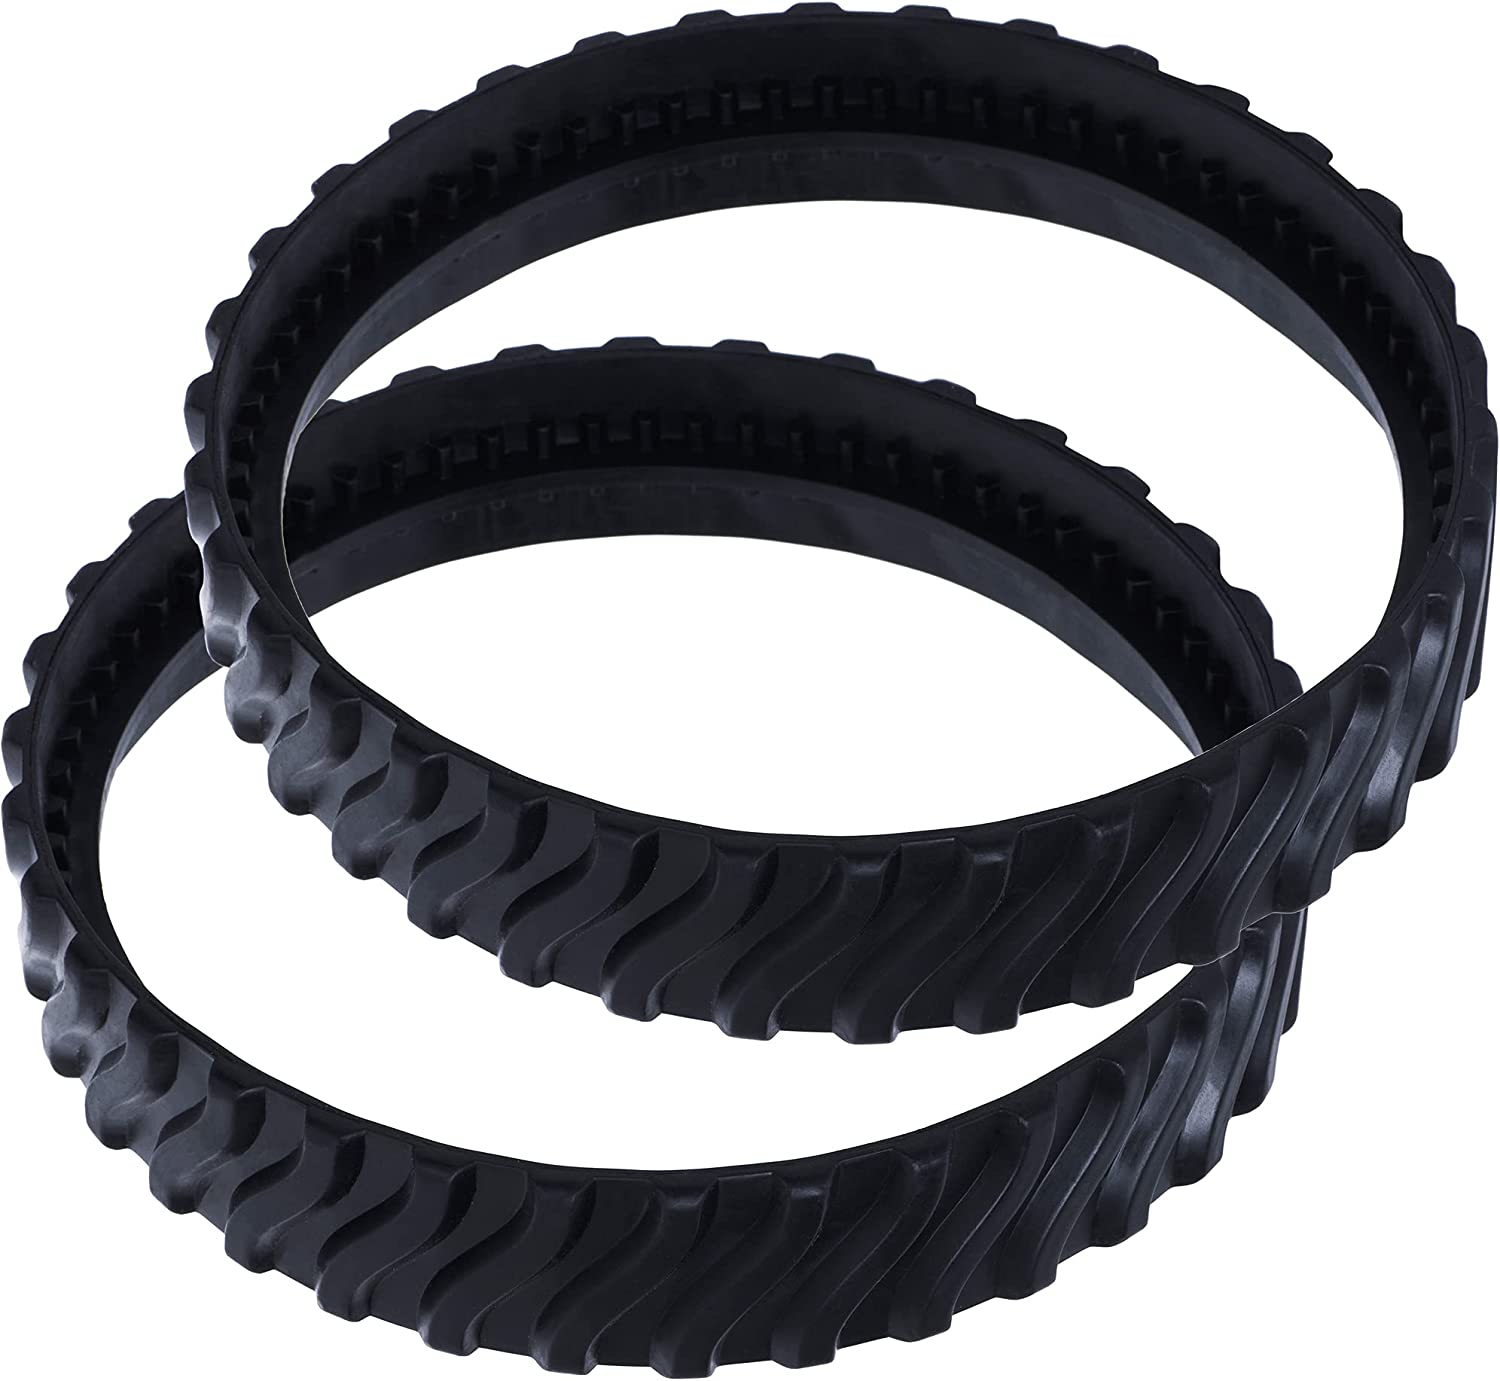 Canamax R0526100 Swimming Pool Cleaner Replacement Track Special price Selling and selling Wh Tire